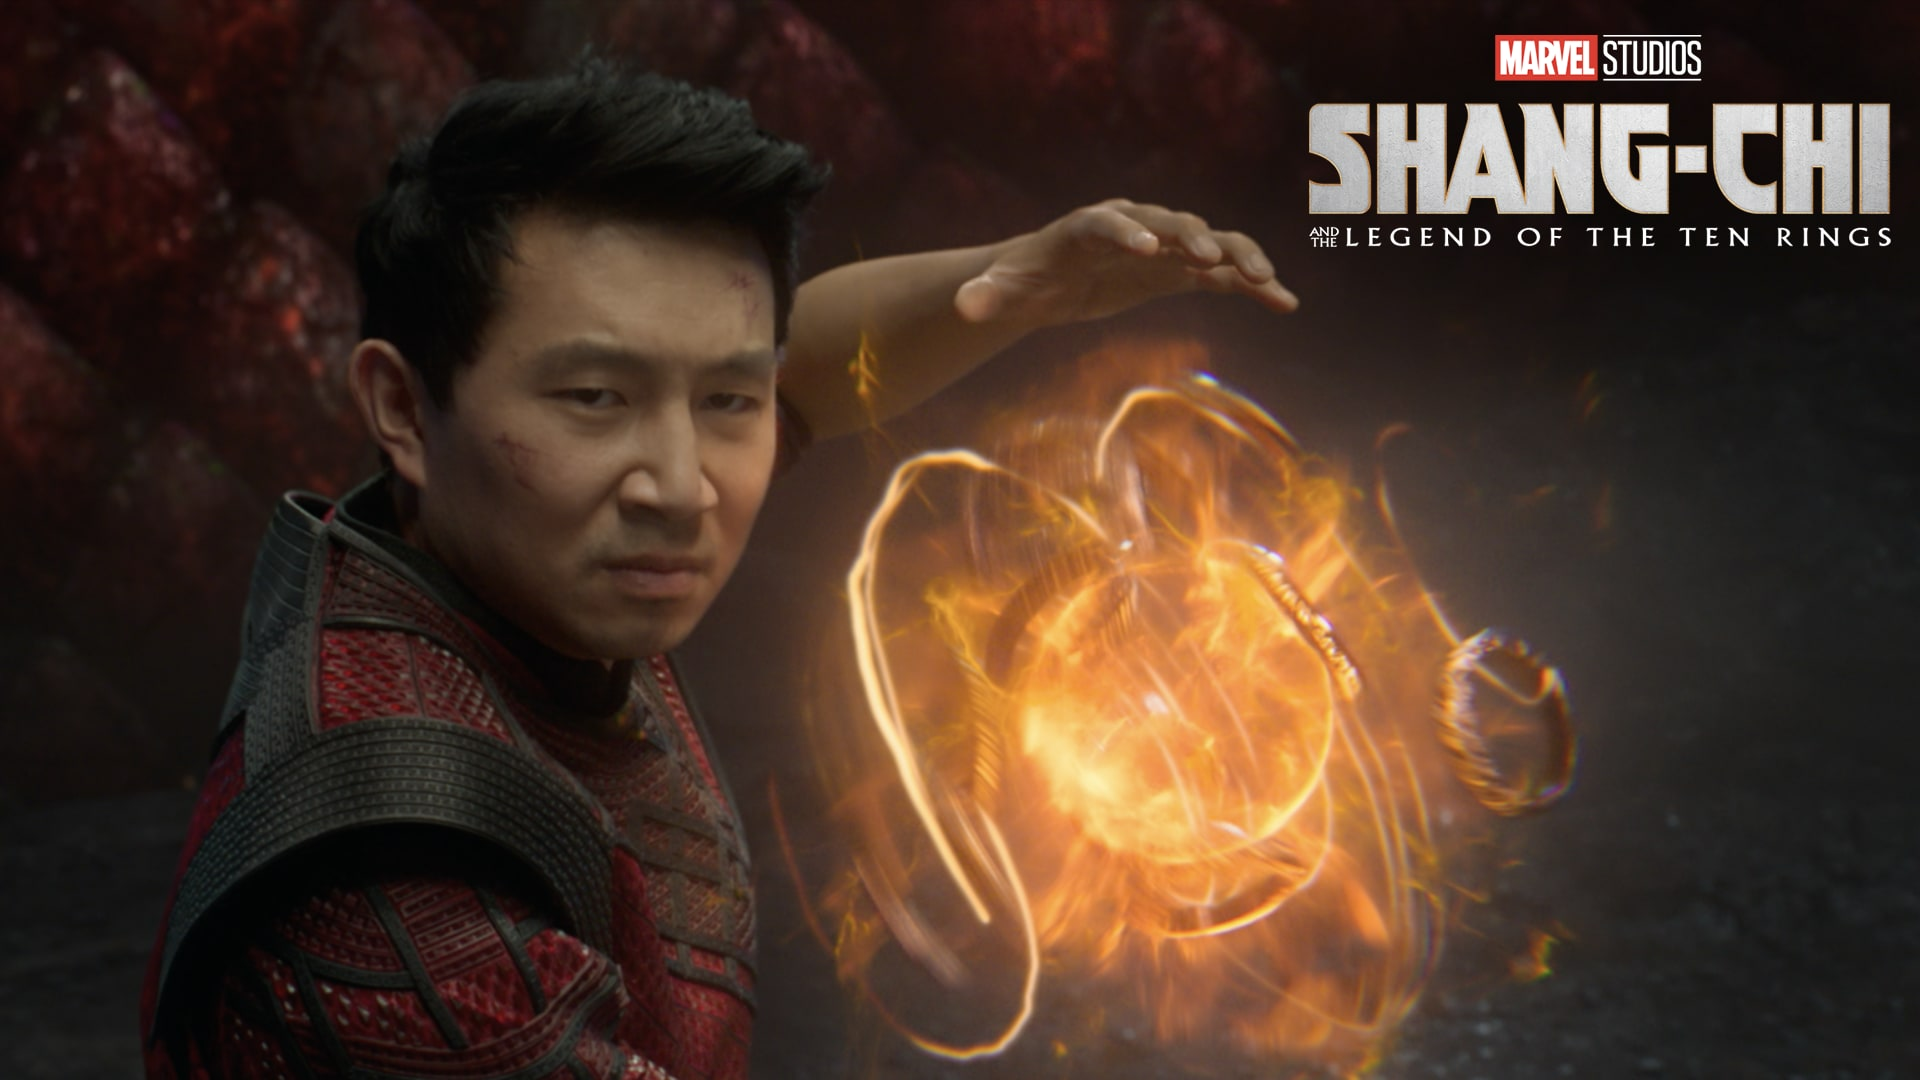 Call   Marvel Studios' Shang-Chi and the Legend of the Ten Rings